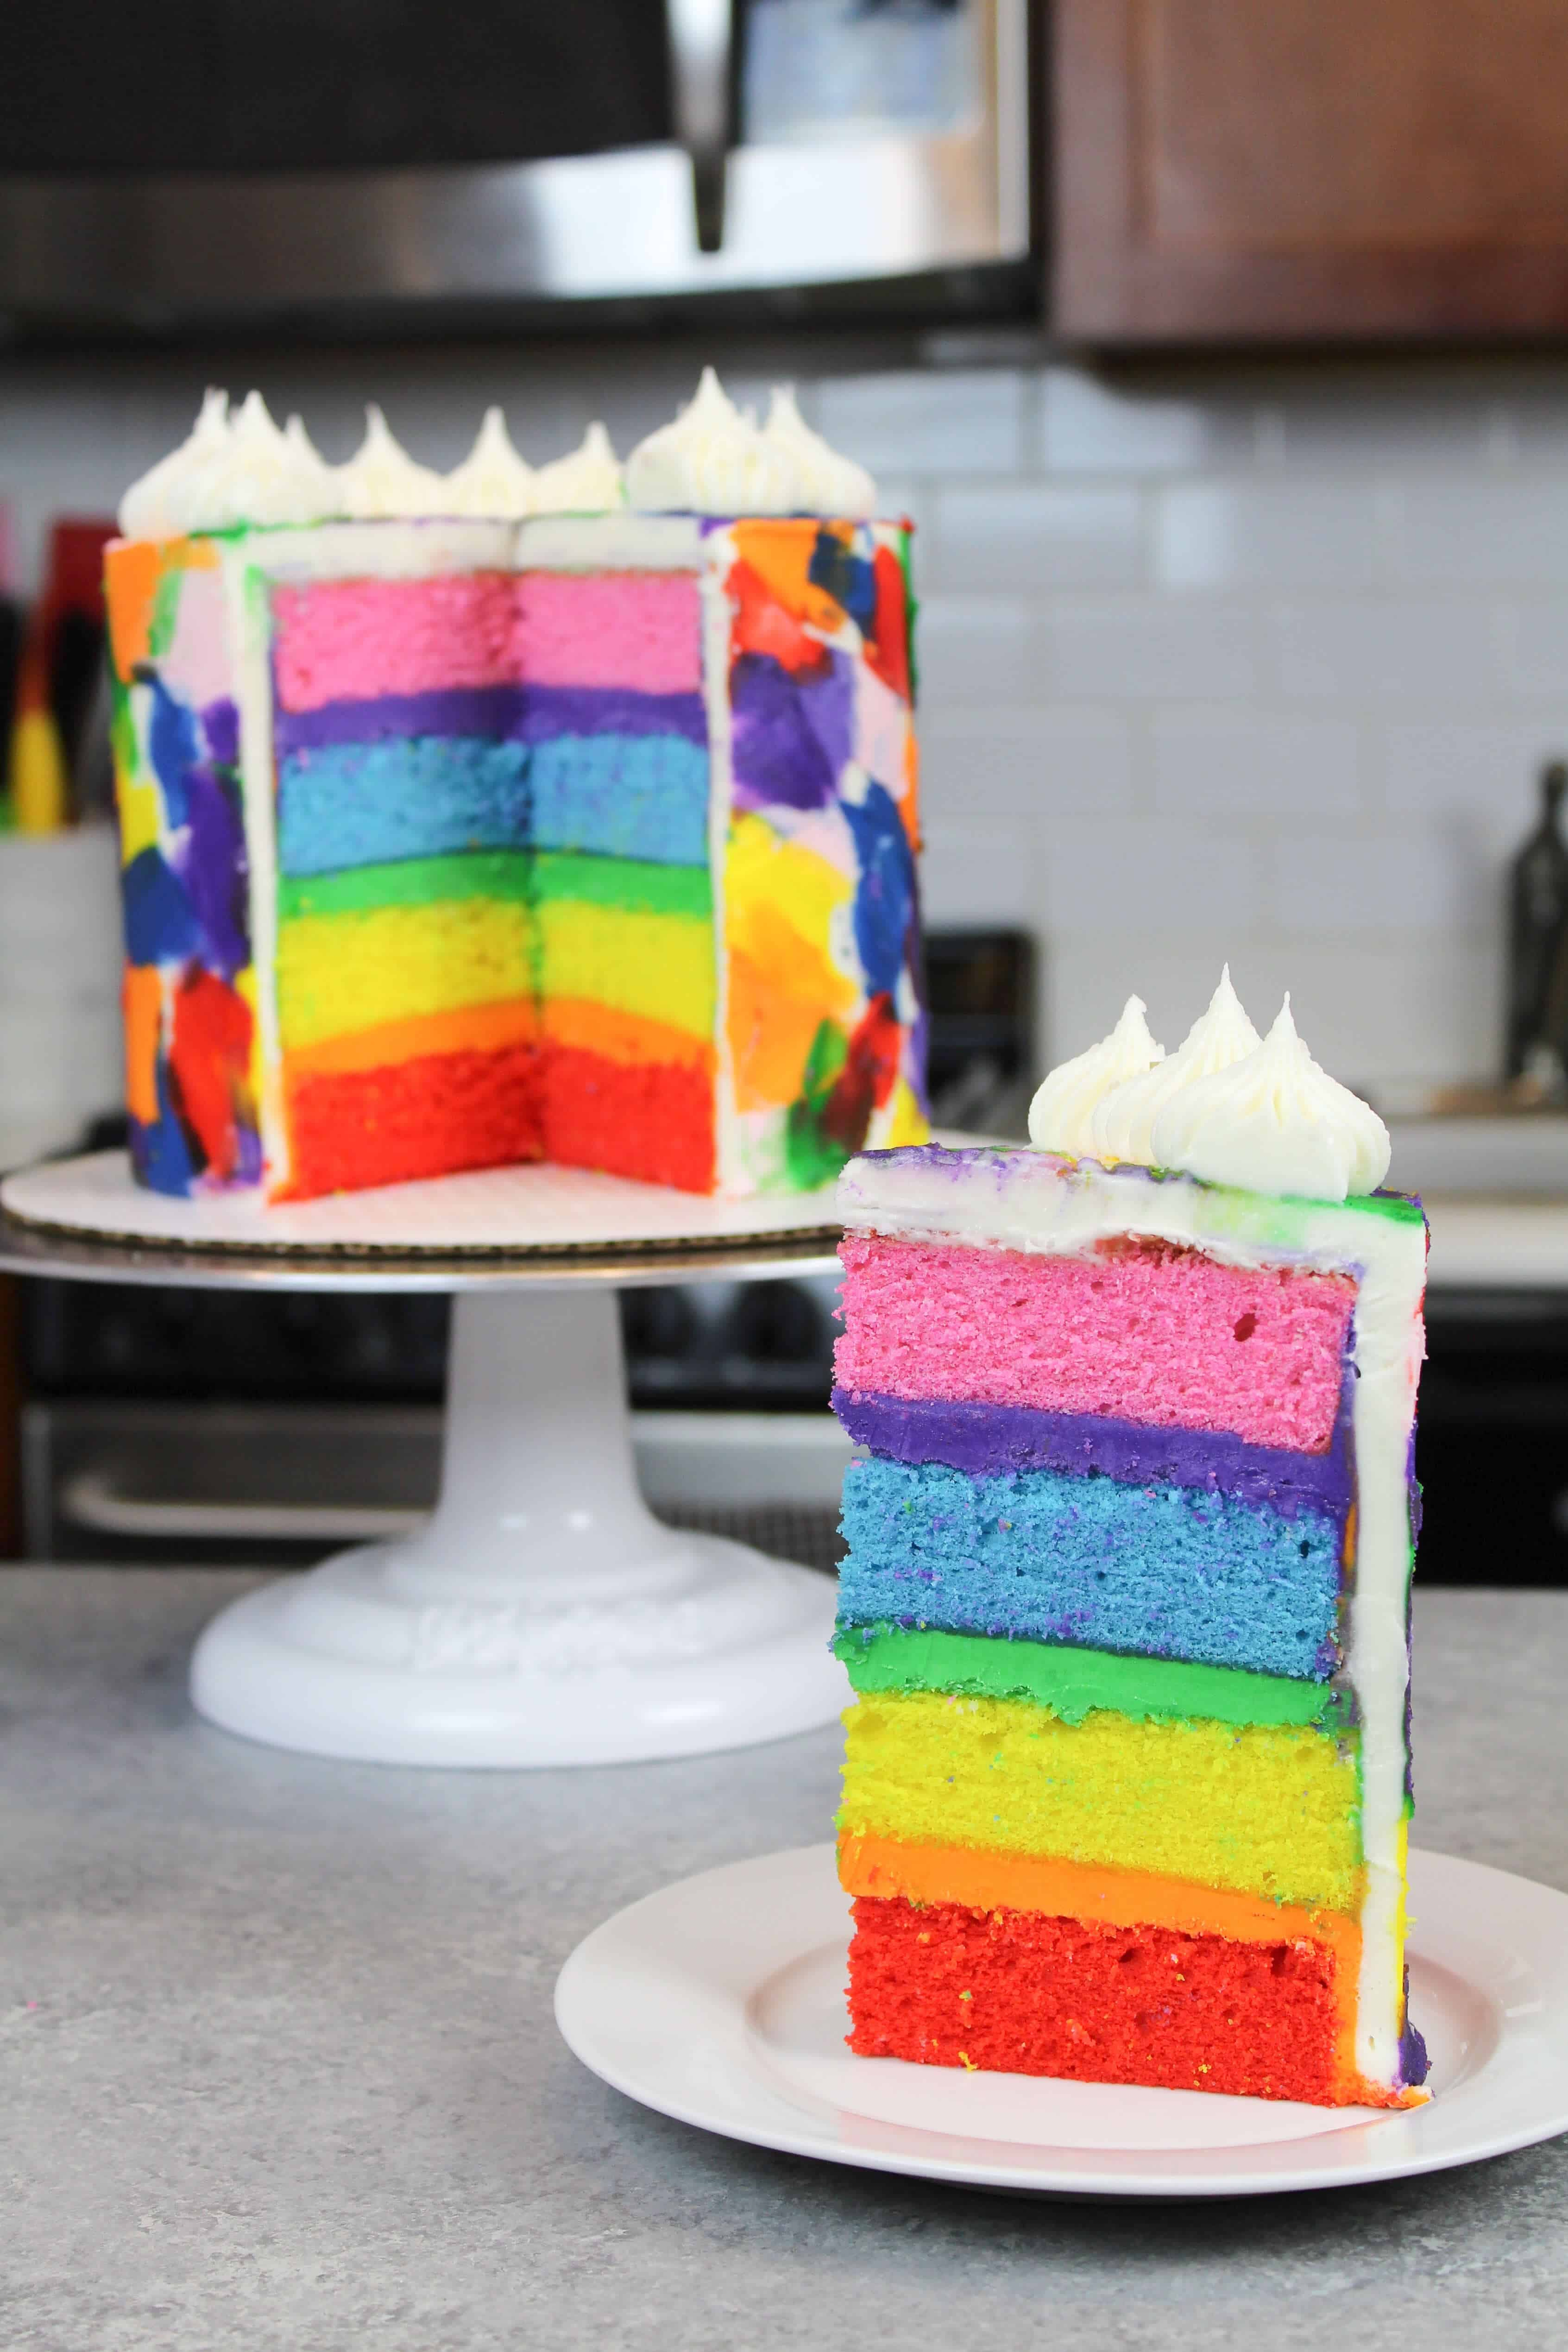 Rainbow layer cake recipe made with 4 cake layers